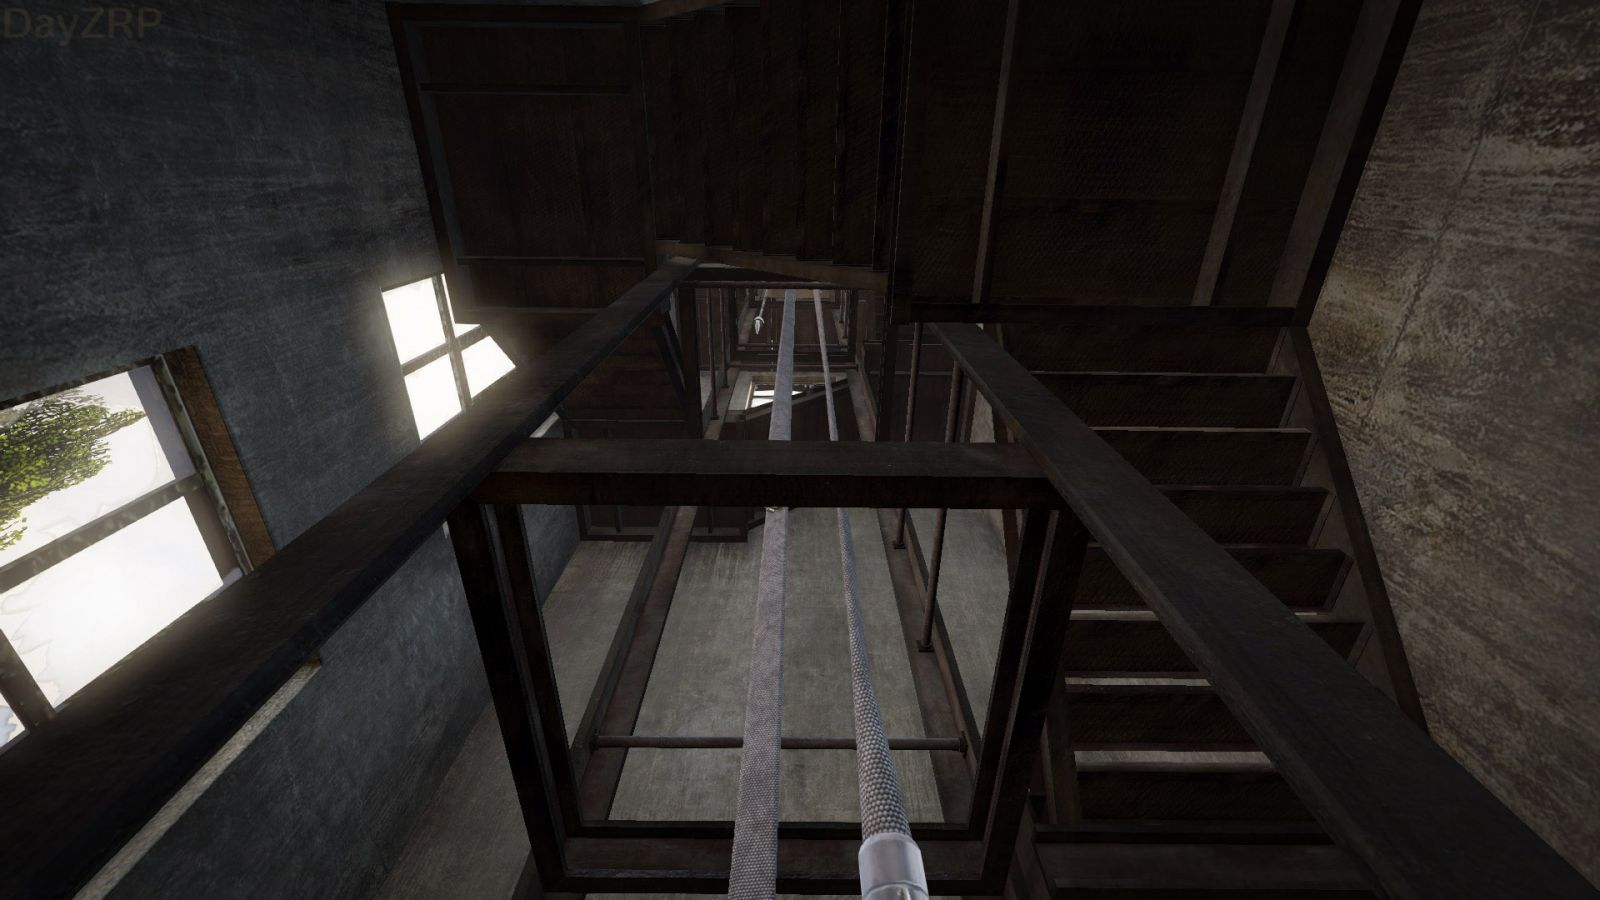 Fire Station Tower (Interior)